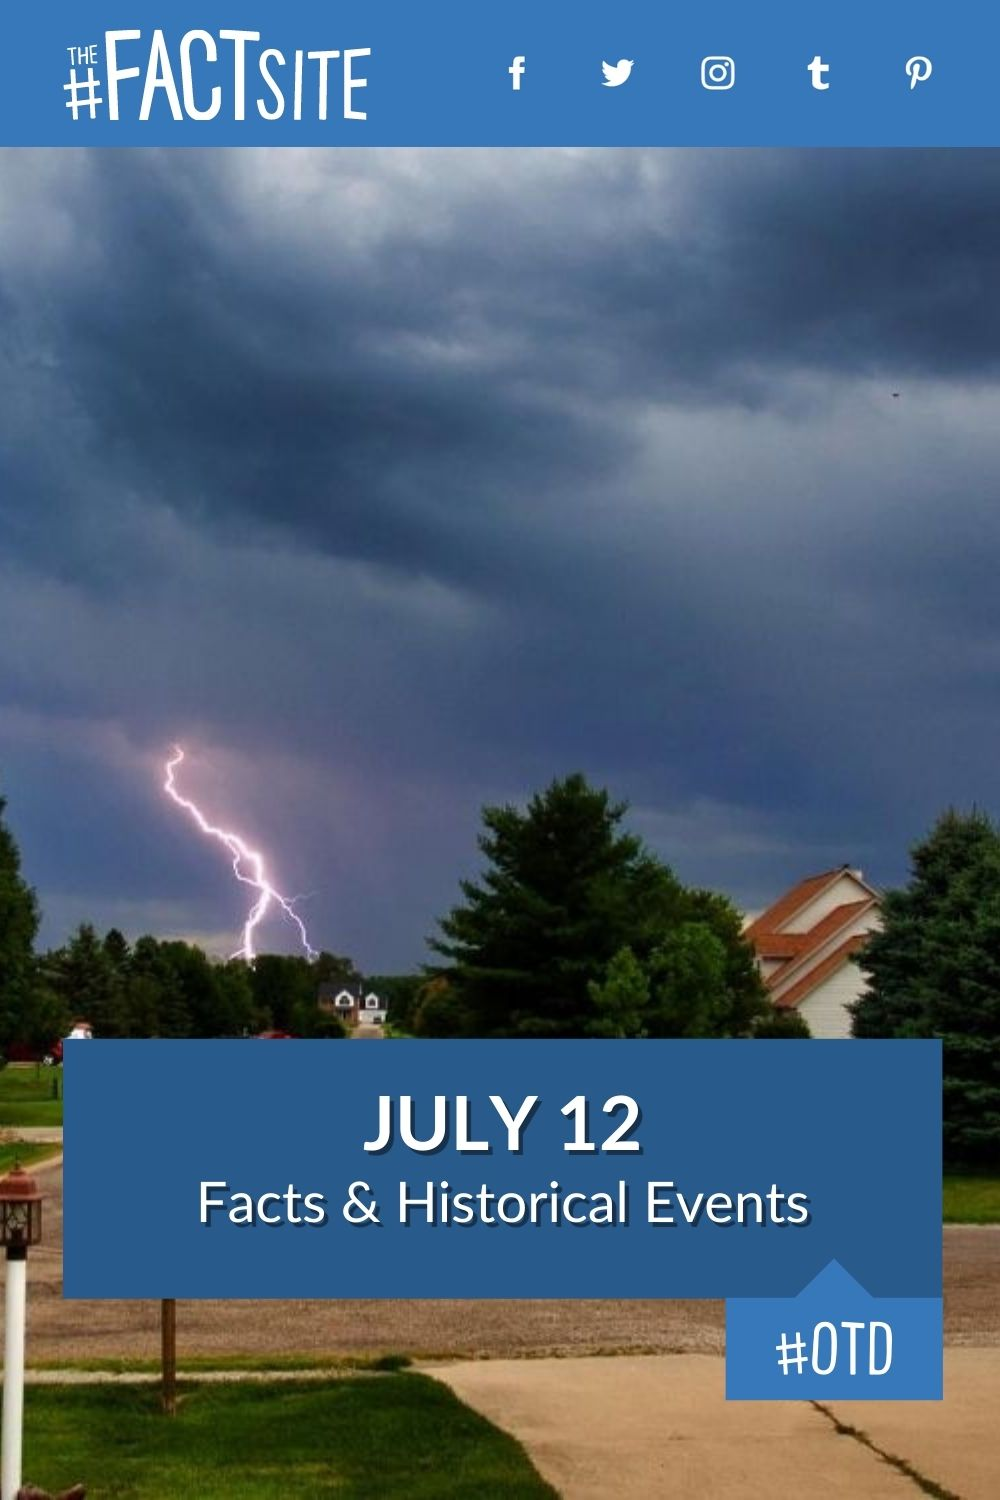 Facts & Historic Events That Happened on July 12